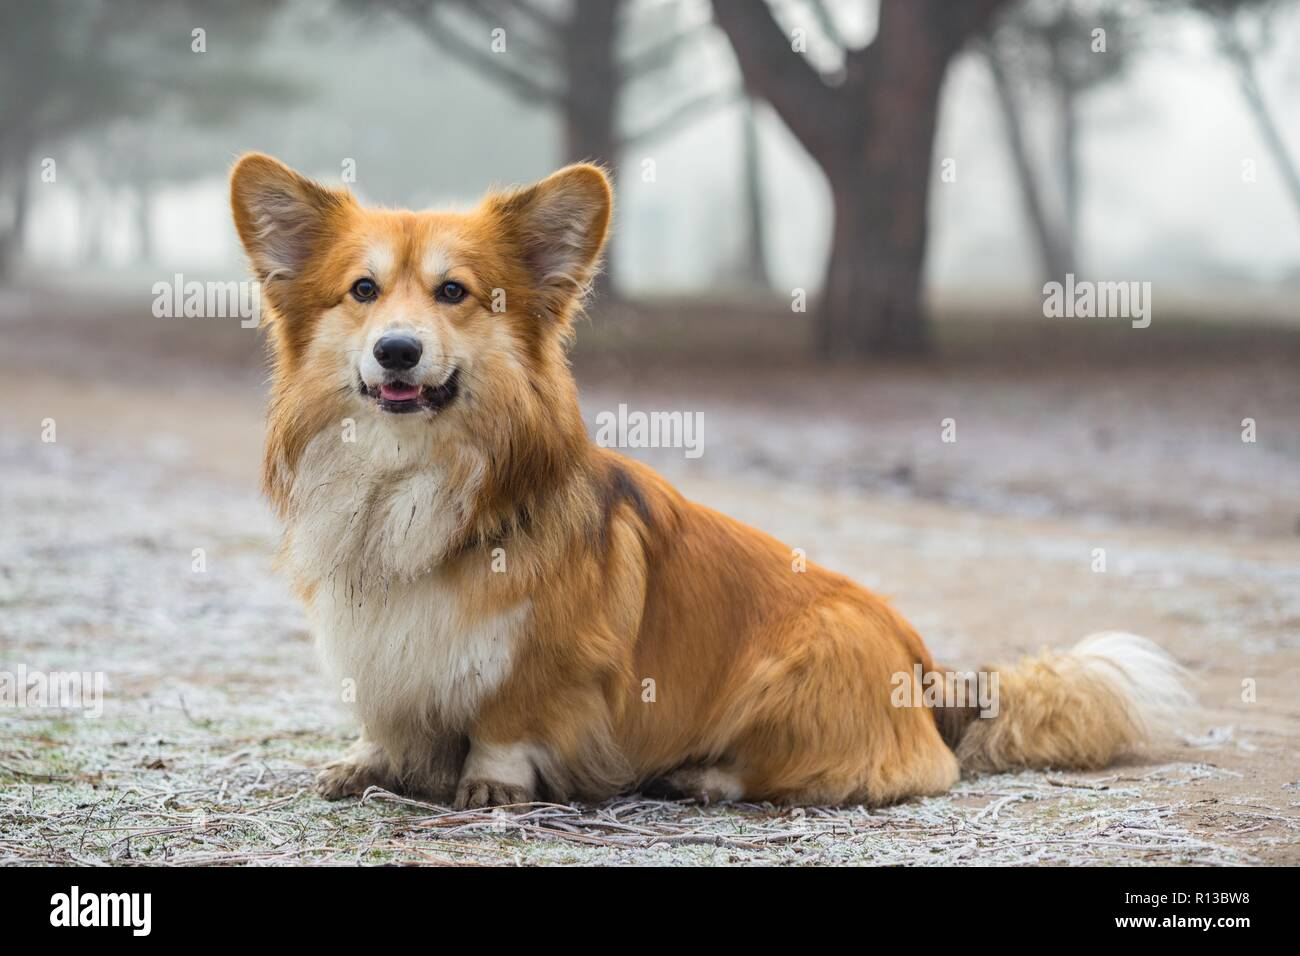 corgi fluffy dog at the outdoor. close up portrait at the snow. walking in winter - Stock Image